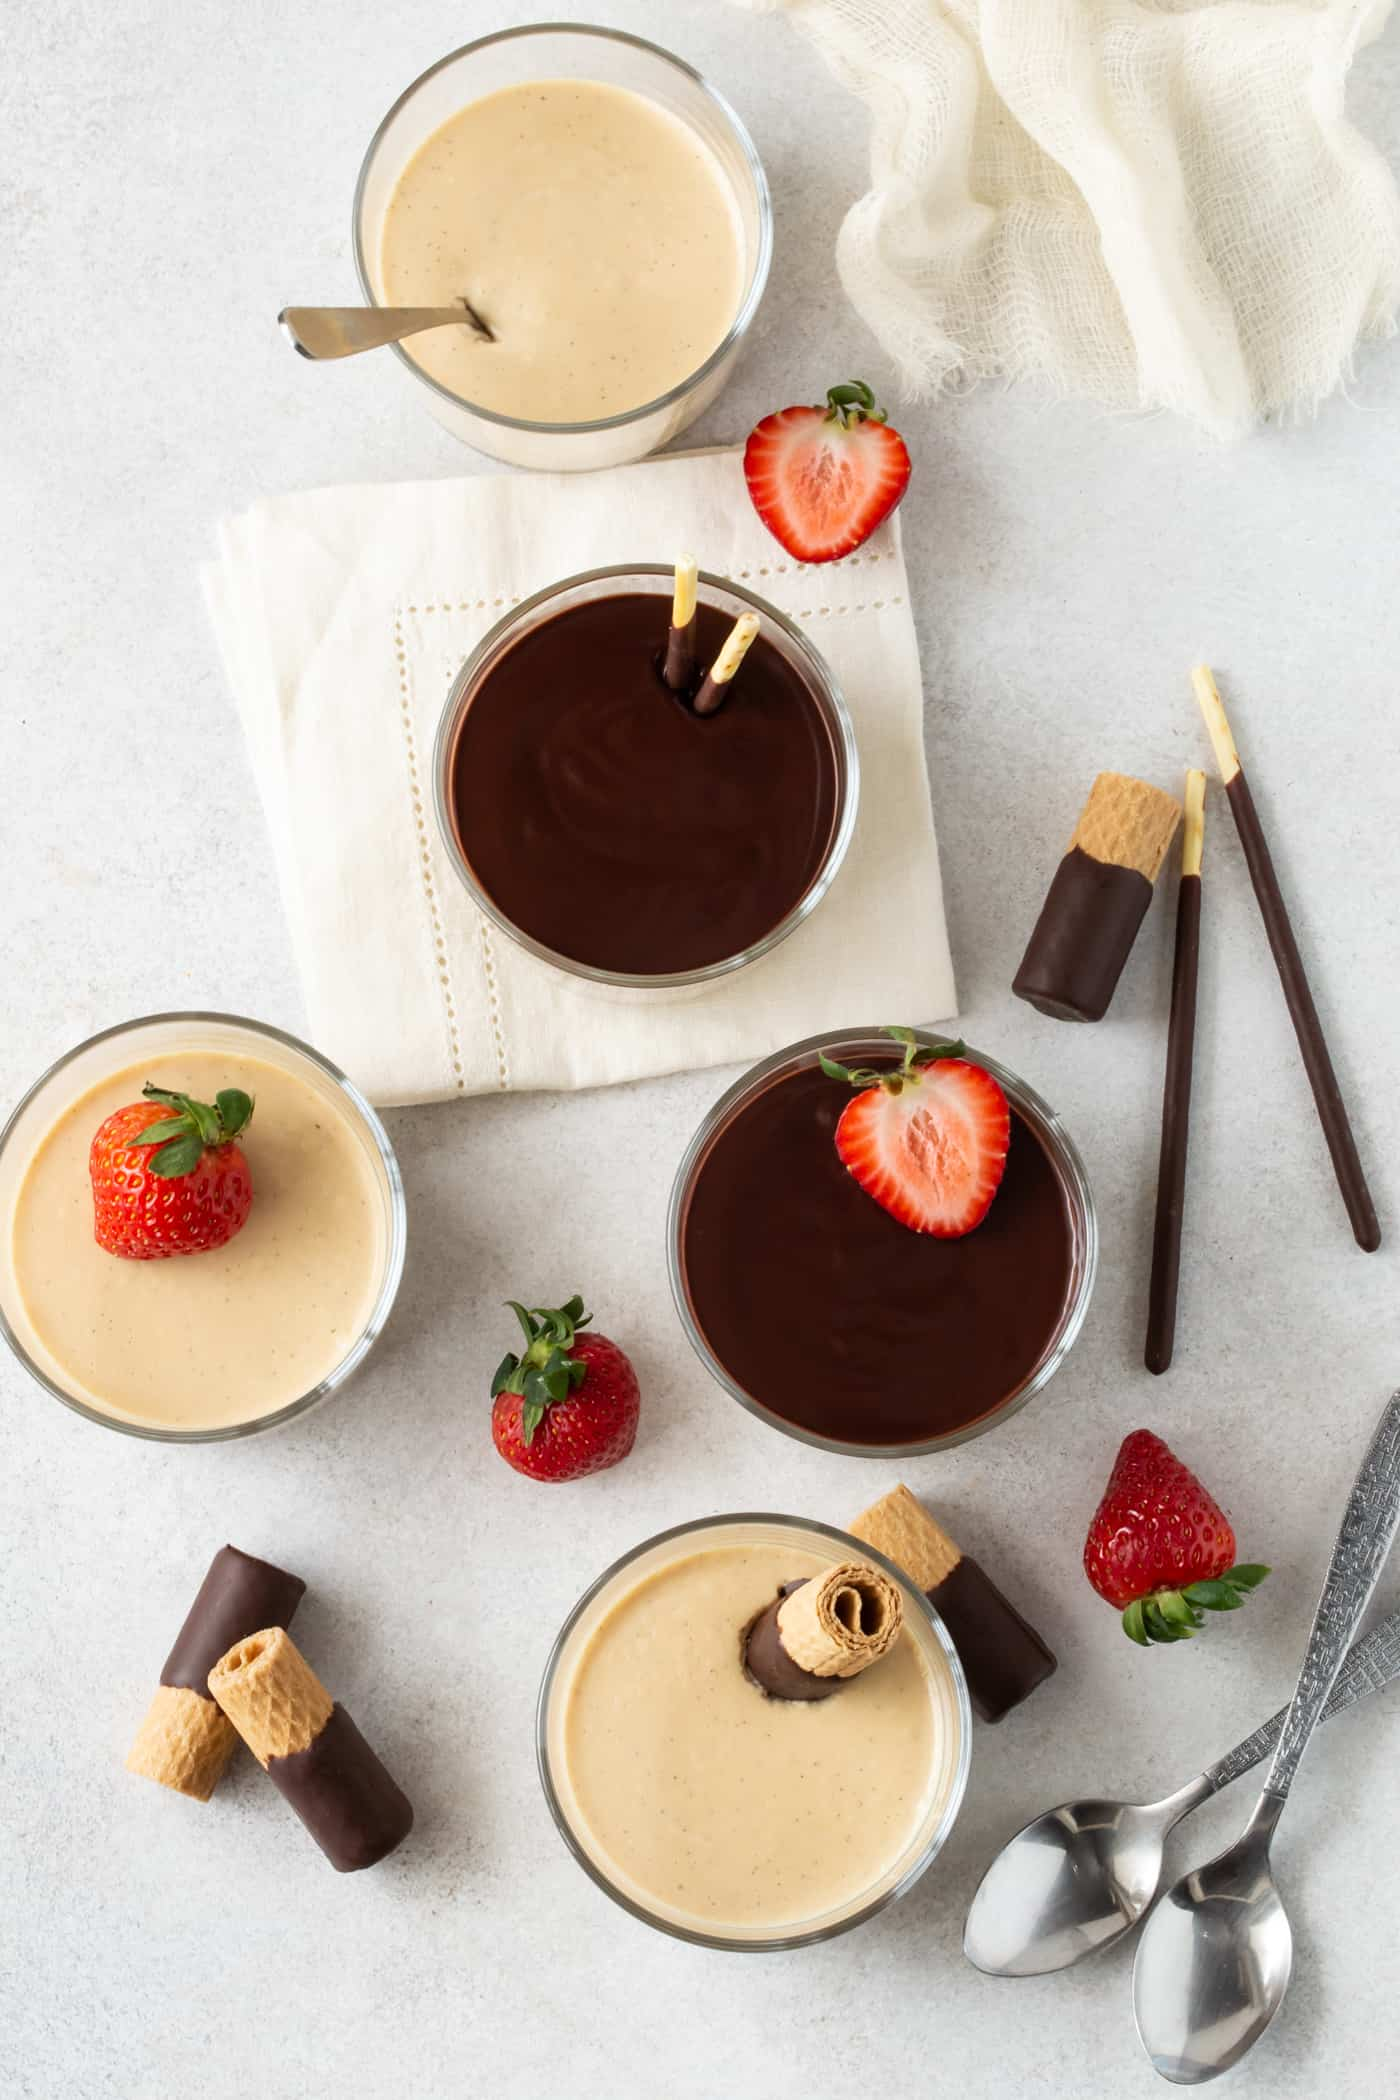 Top down shot of Irish Cream Panna Cotta in glass ramekins. Garnished with chocolate ganache, fresh strawberries and chocolate covered wafer cookies.